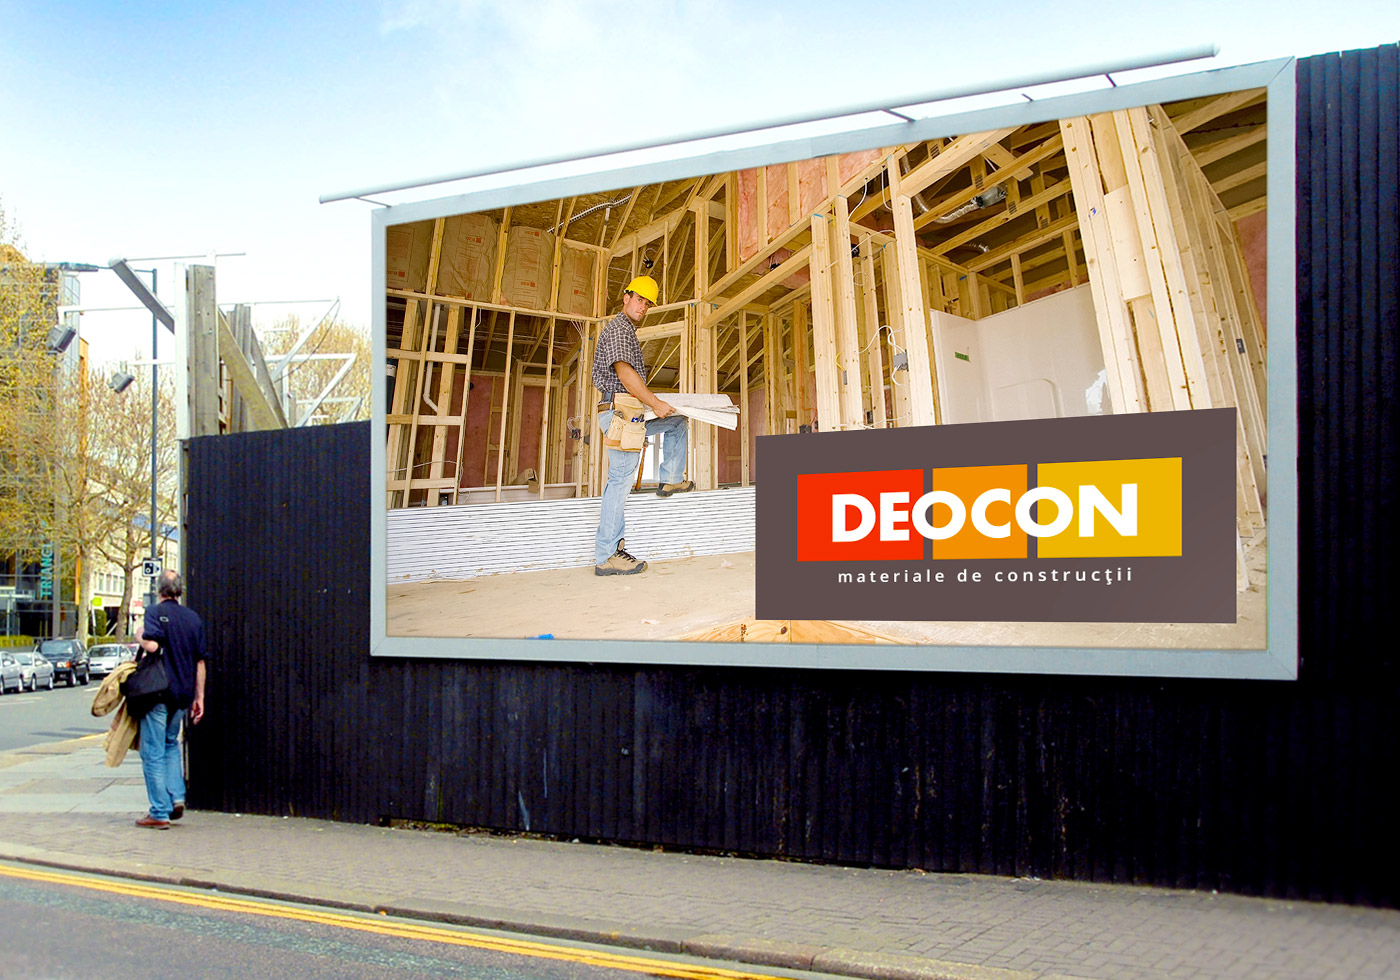 Decon billboard design